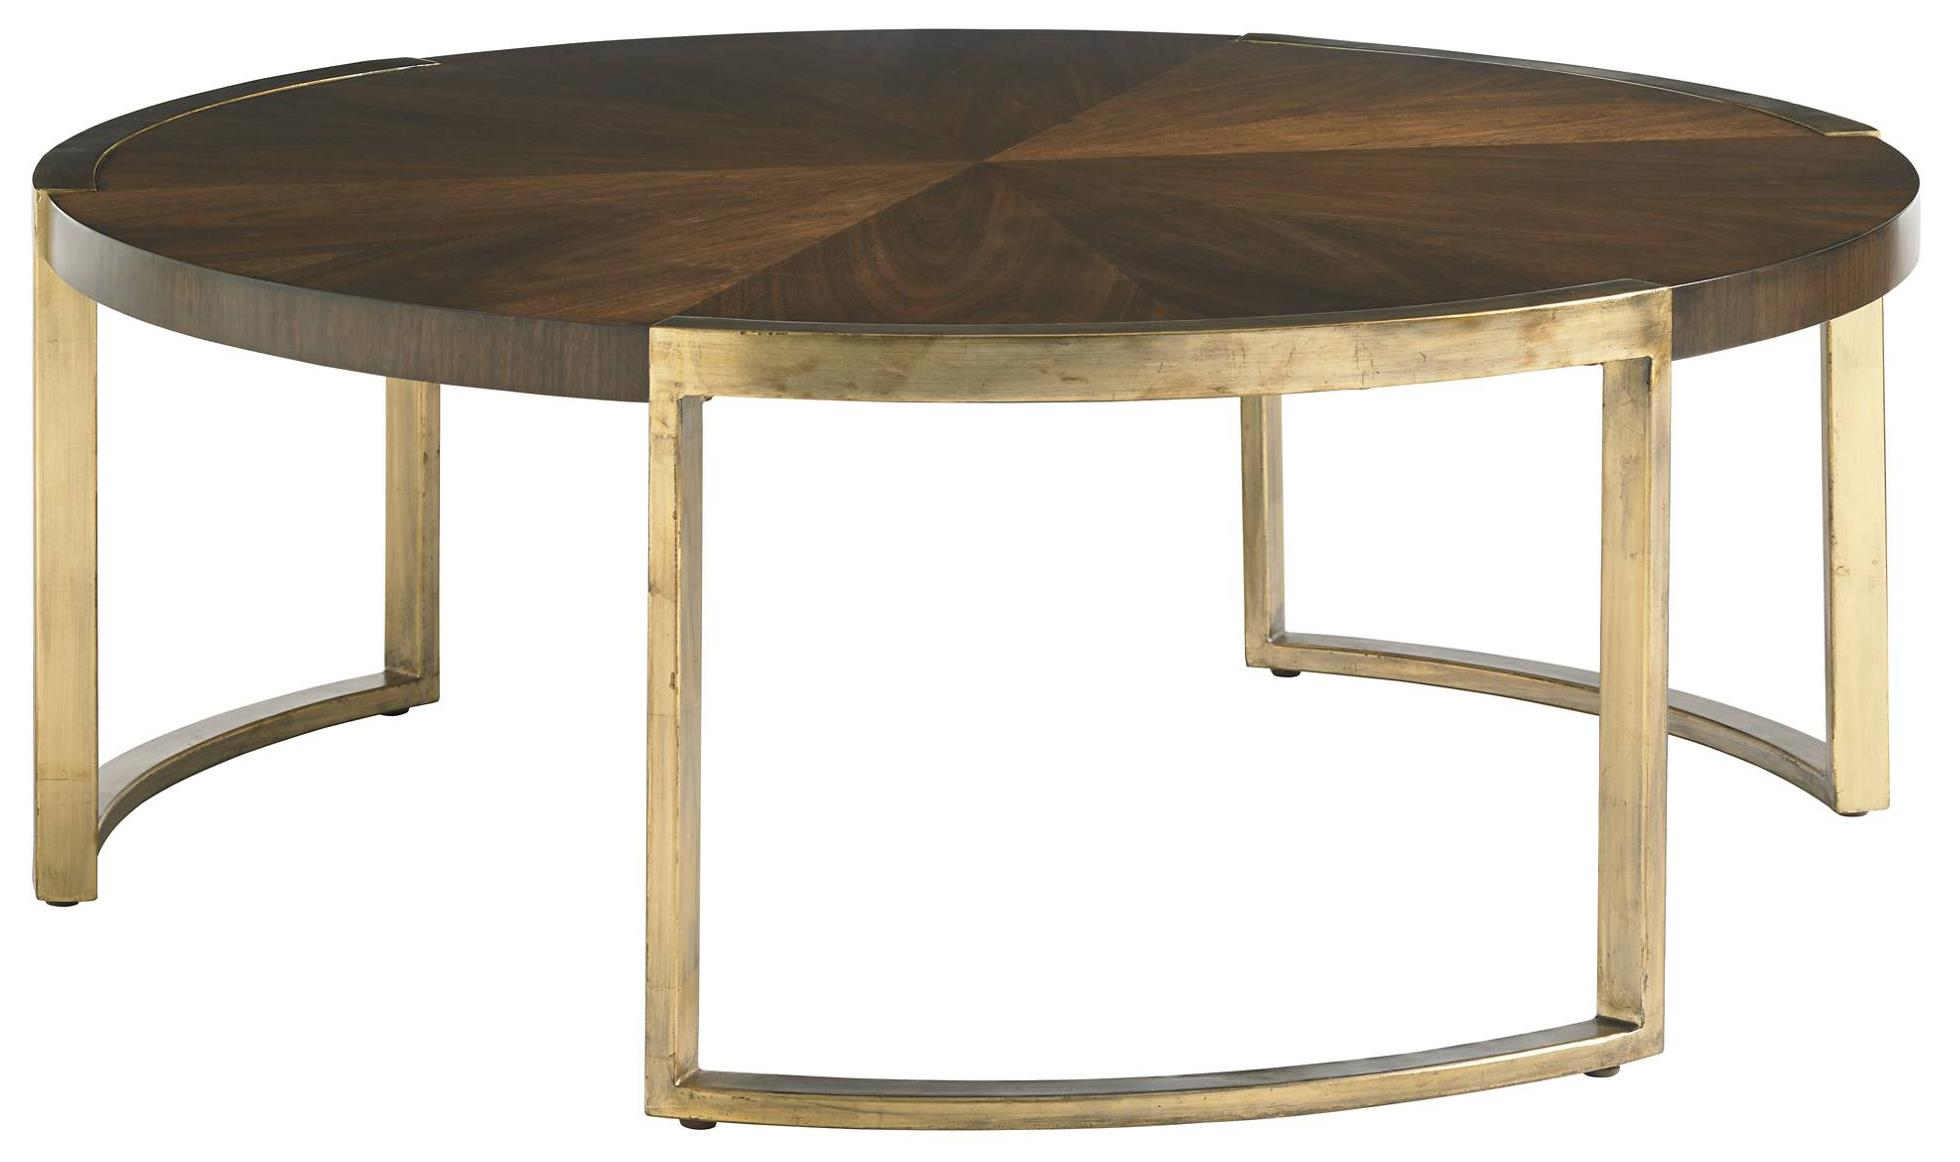 Stanley Furniture Crestaire Autry Round Cocktail Table - Item Number: 436-15-01